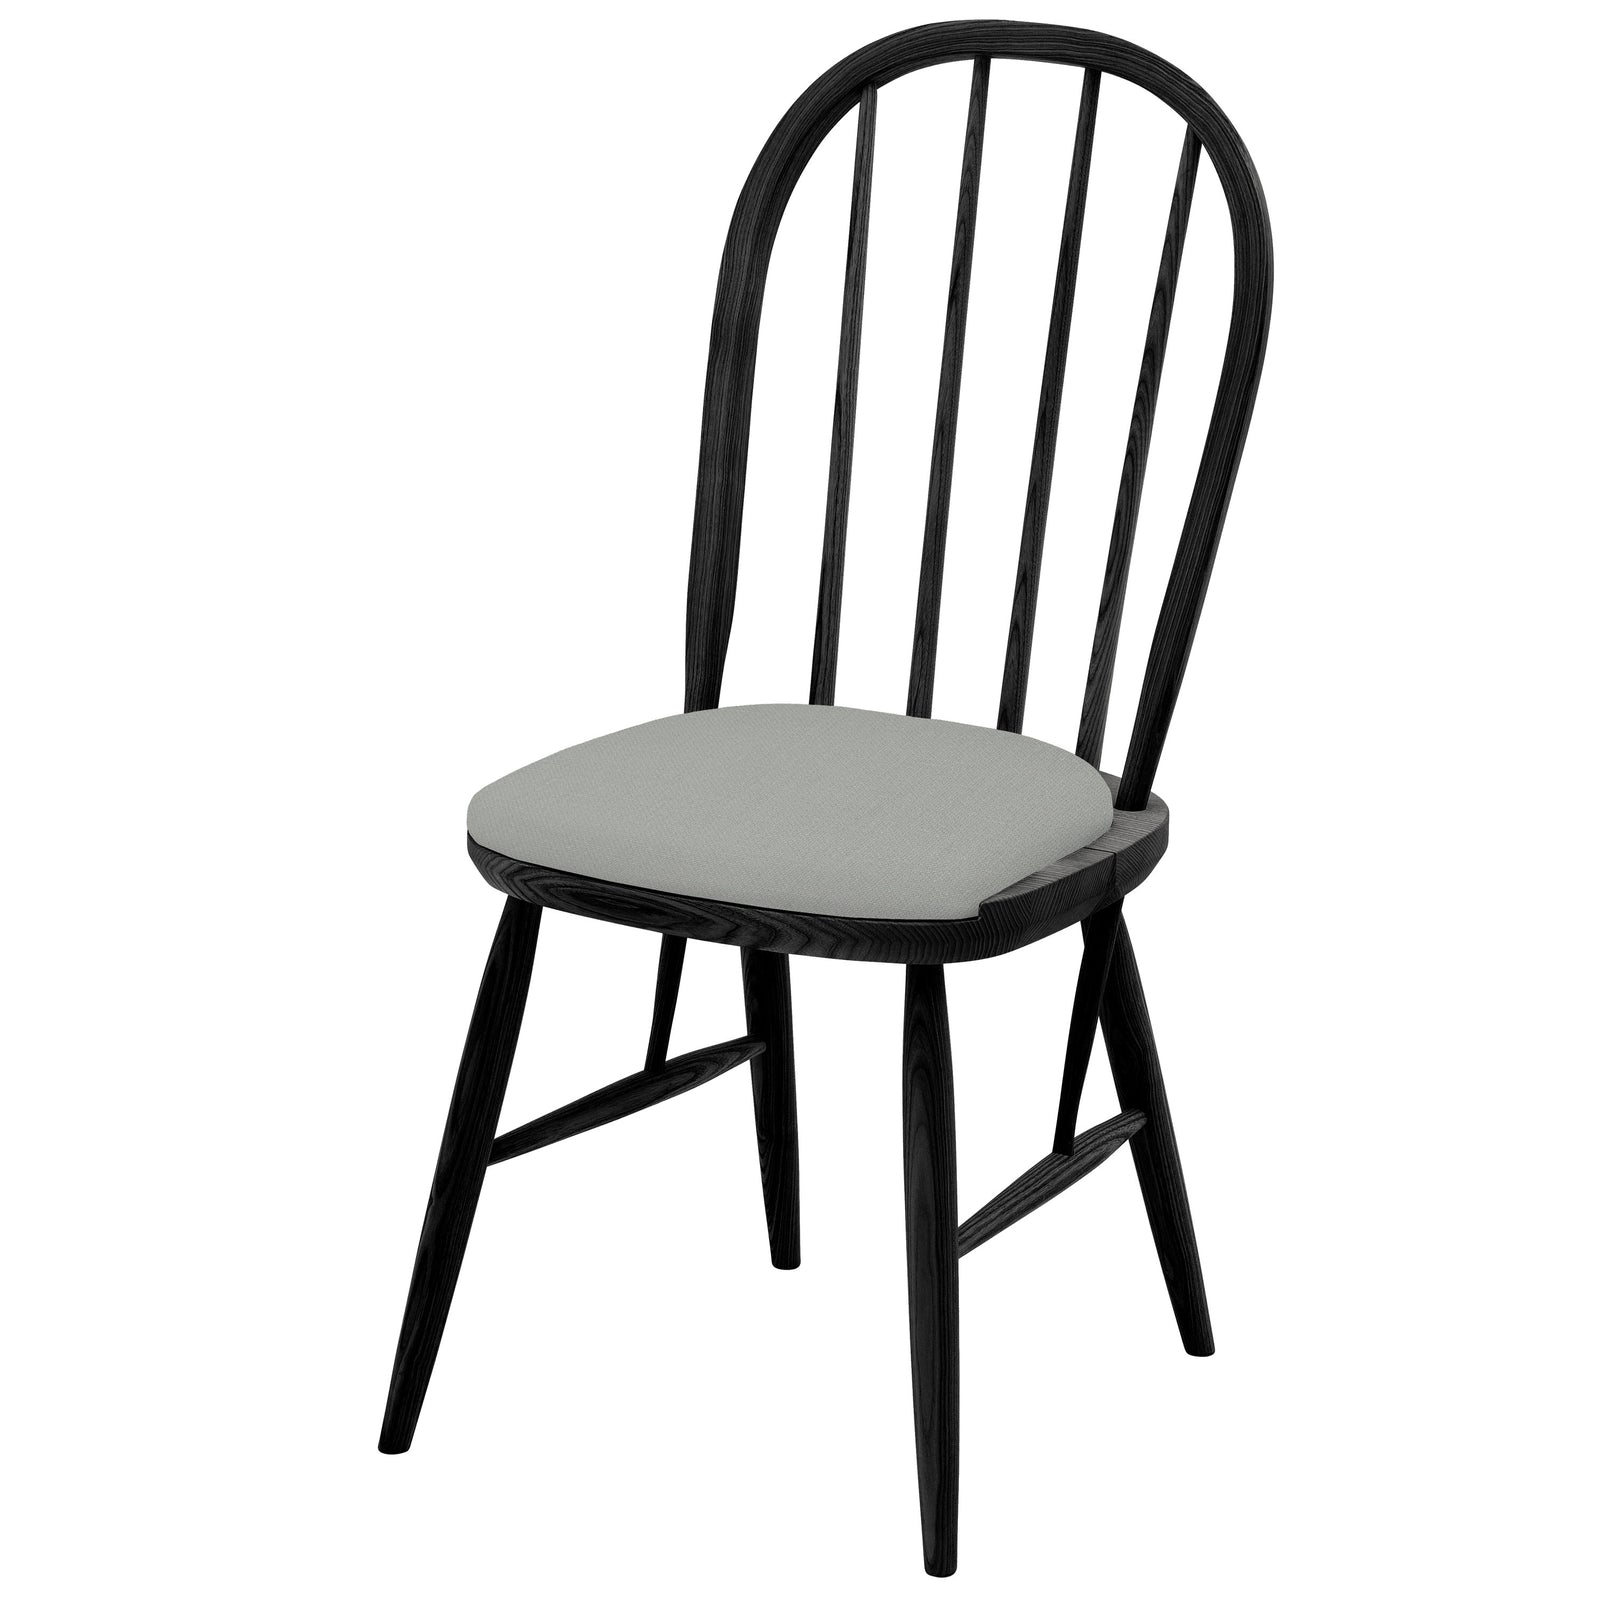 Hand crafted Contemporary Black Chair in solid English Ash Upholstered in your chosen colourway